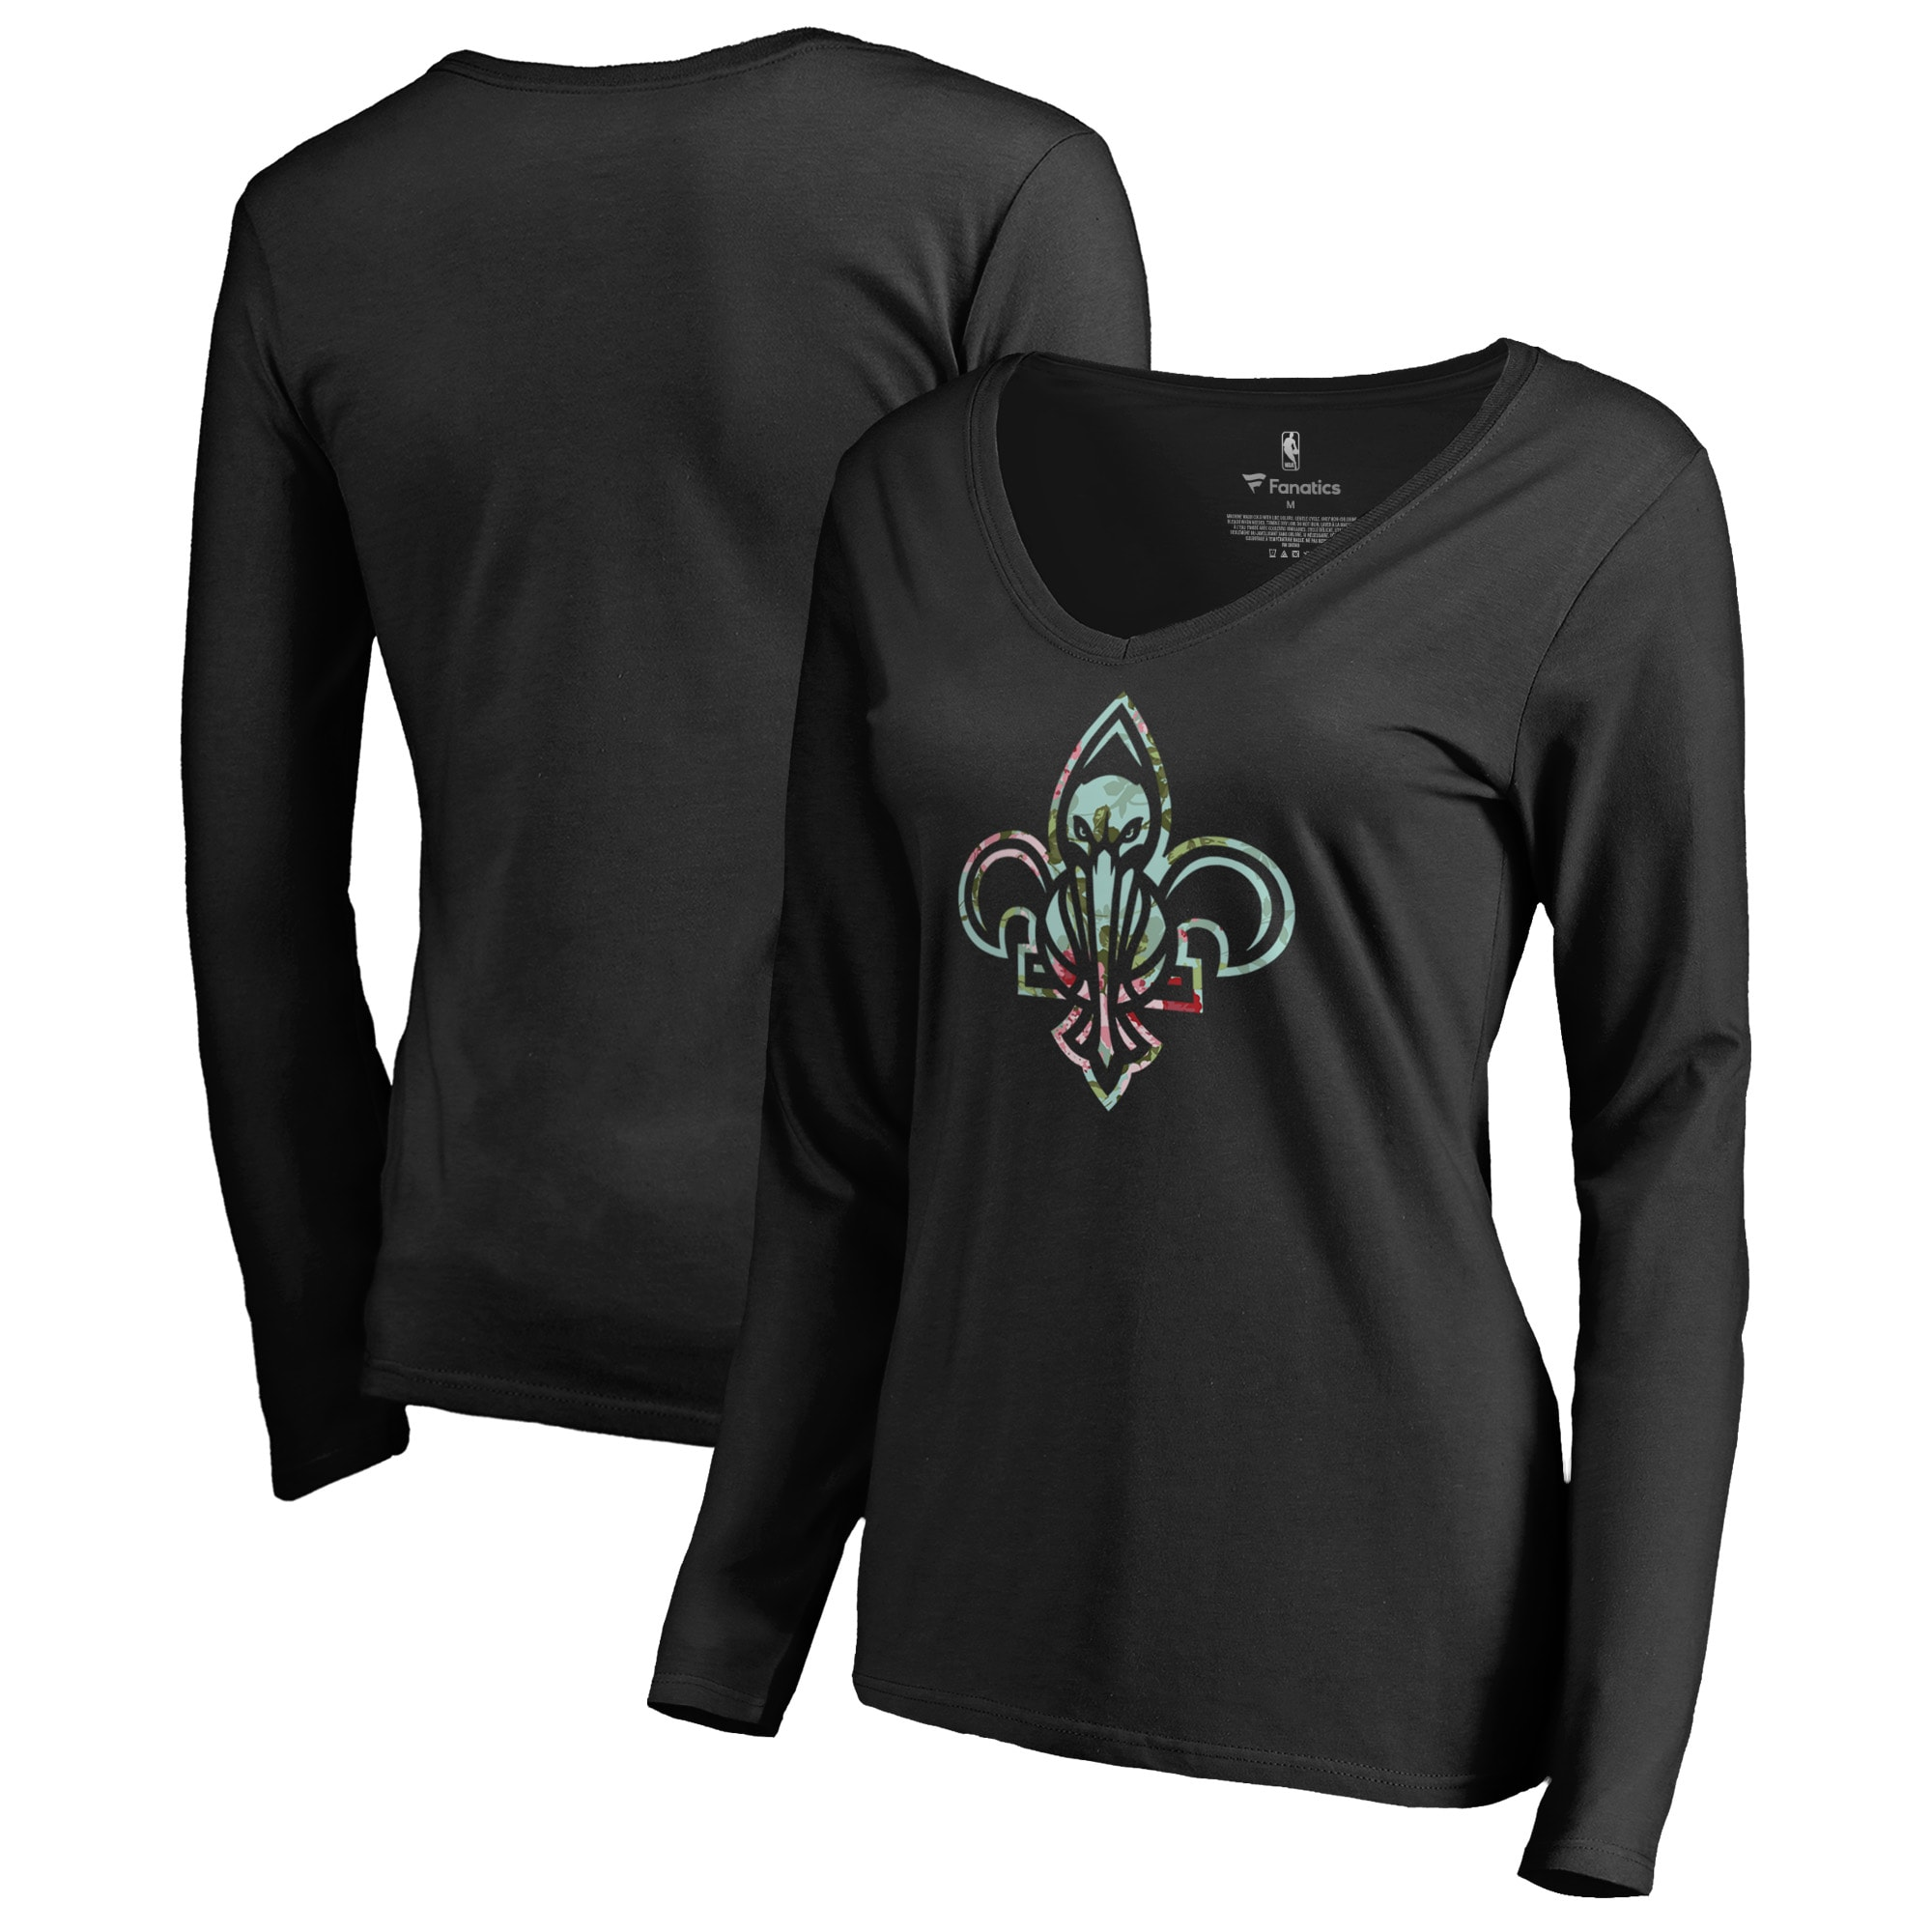 New Orleans Pelicans Fanatics Branded Women's Lovely V-Neck Long Sleeve T-Shirt - Black